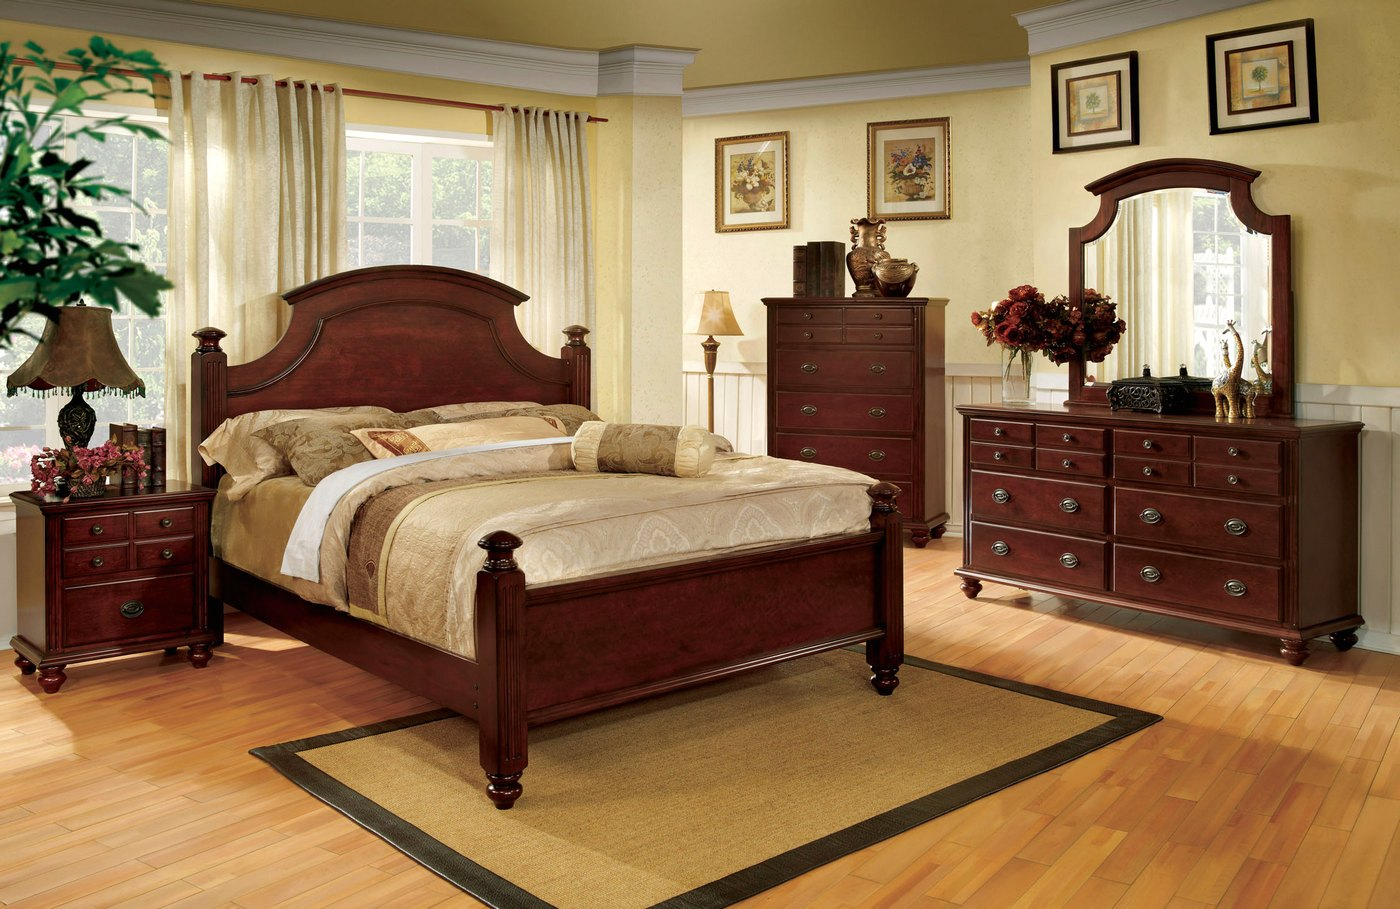 Gabrielle II Elegant European Cherry Bedroom Set With